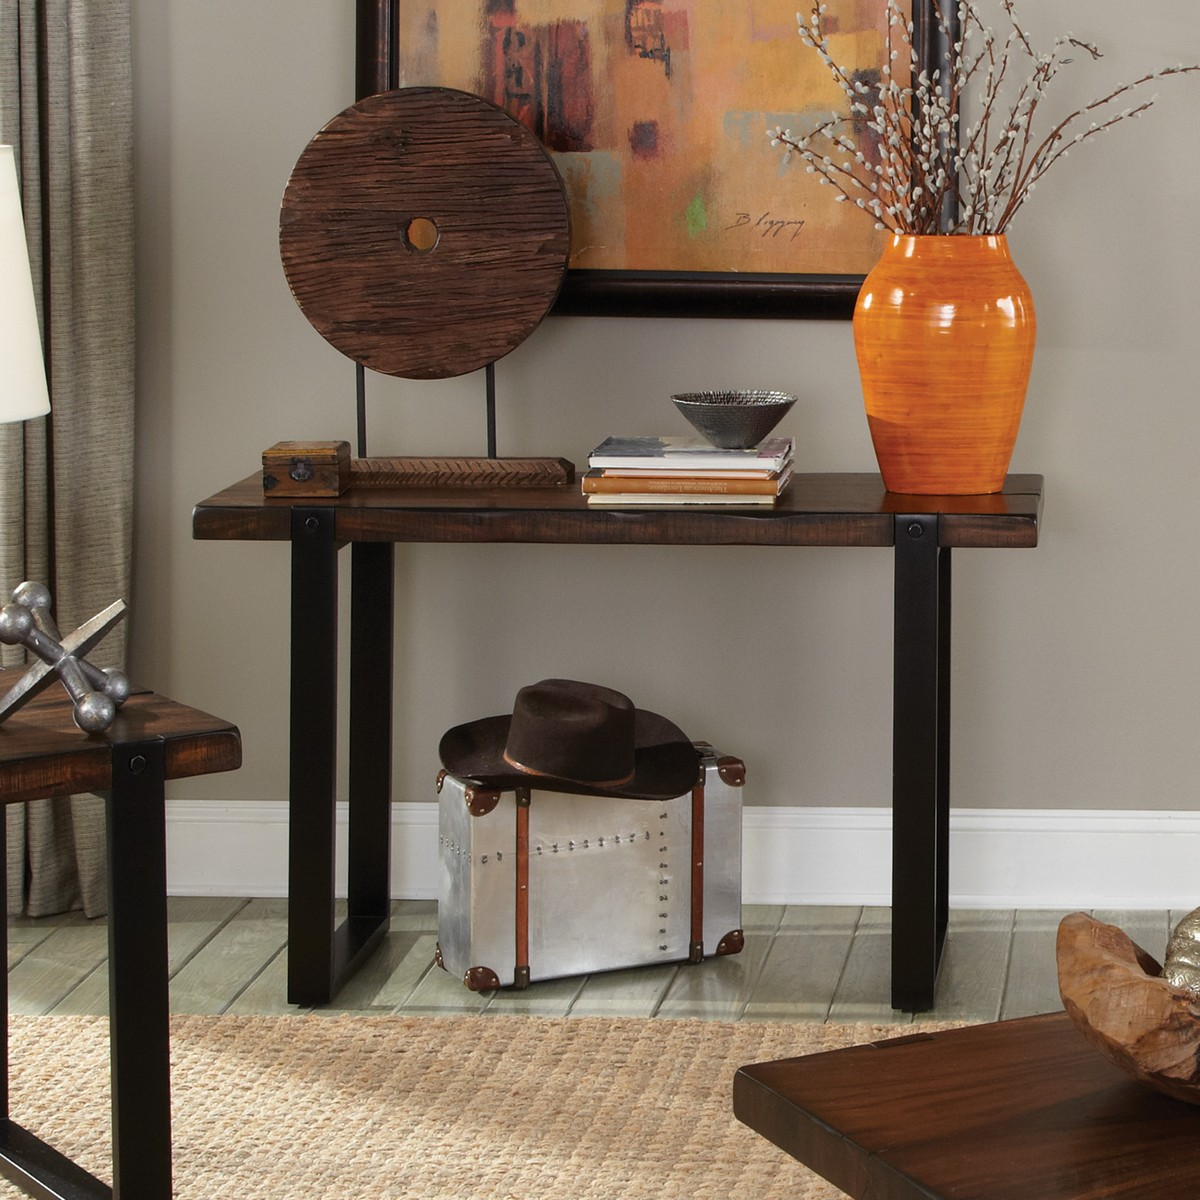 Coaster 703429 Sofa Table - Vintage Brown/black